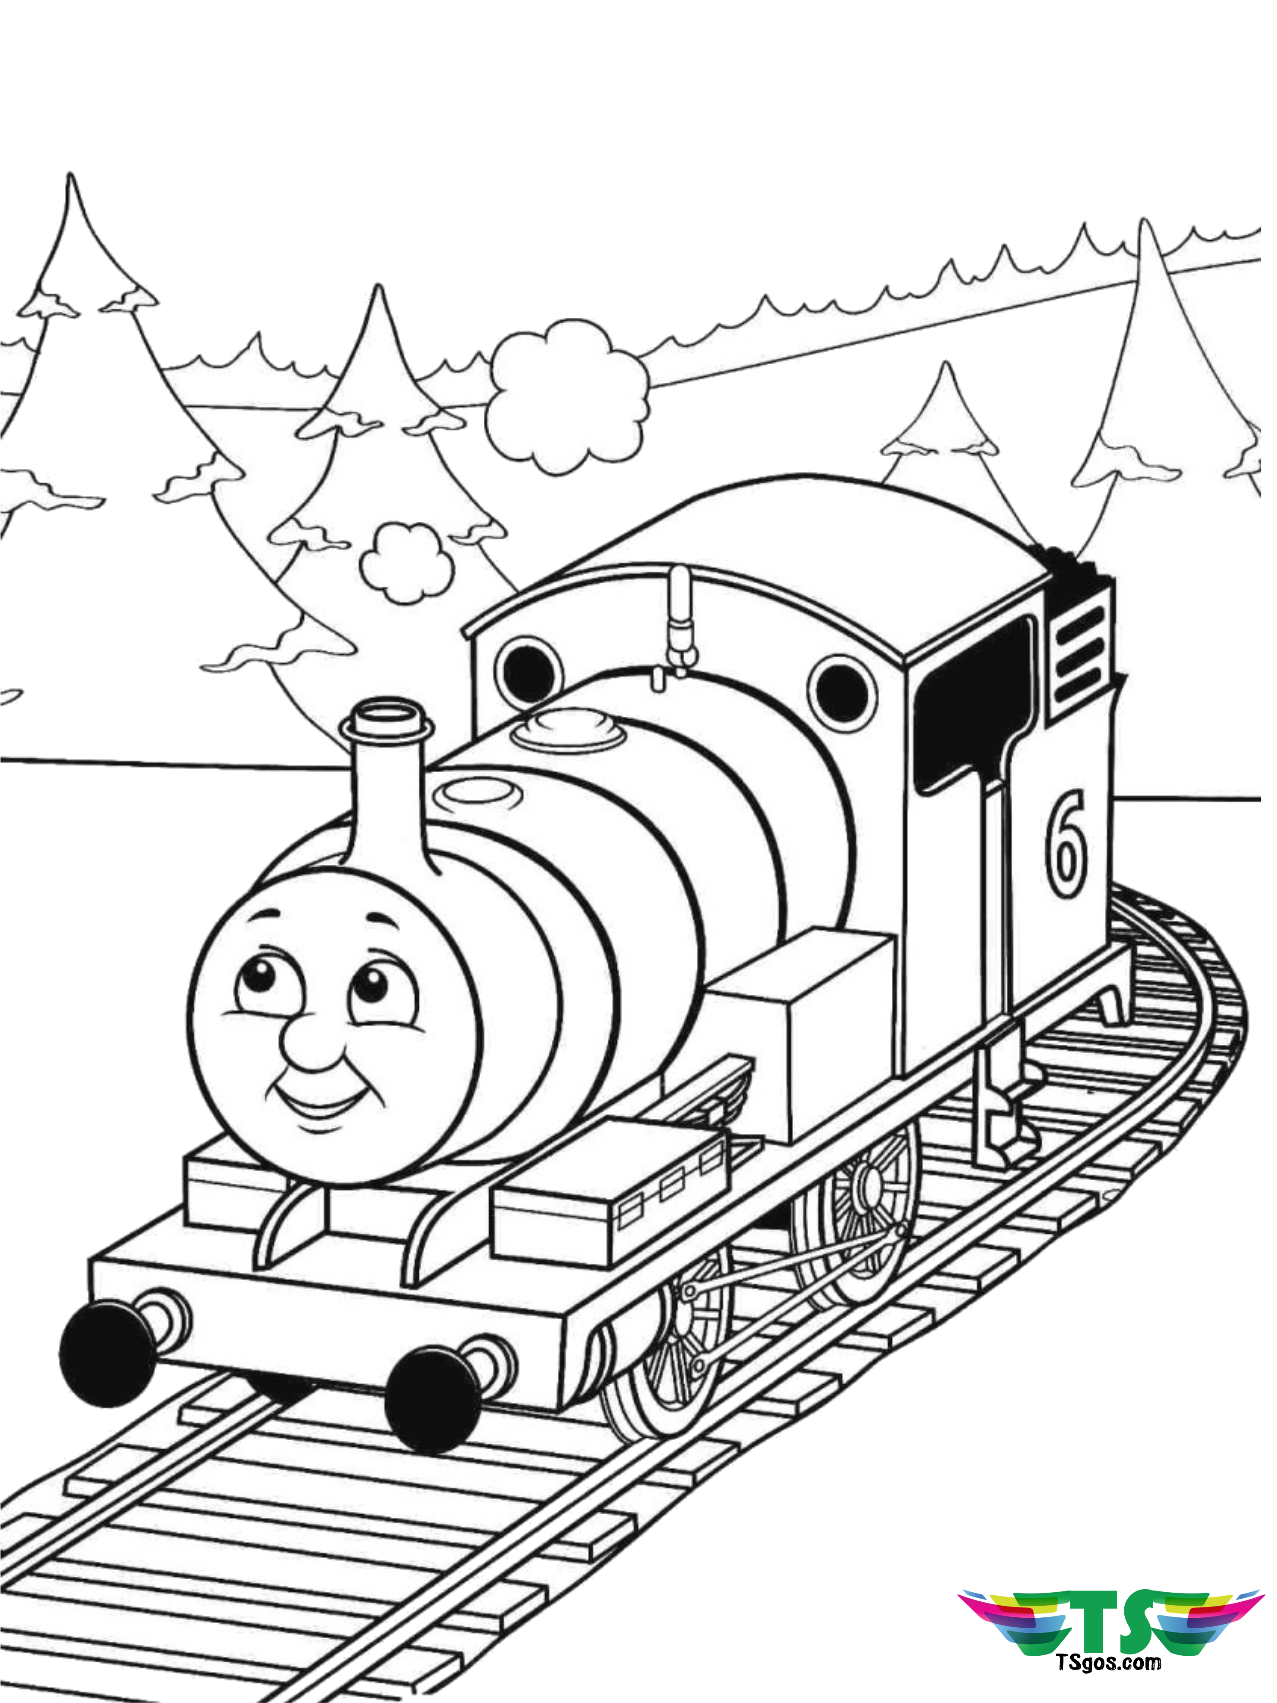 coloring train pages train transportation coloring pages for kids printable pages train coloring